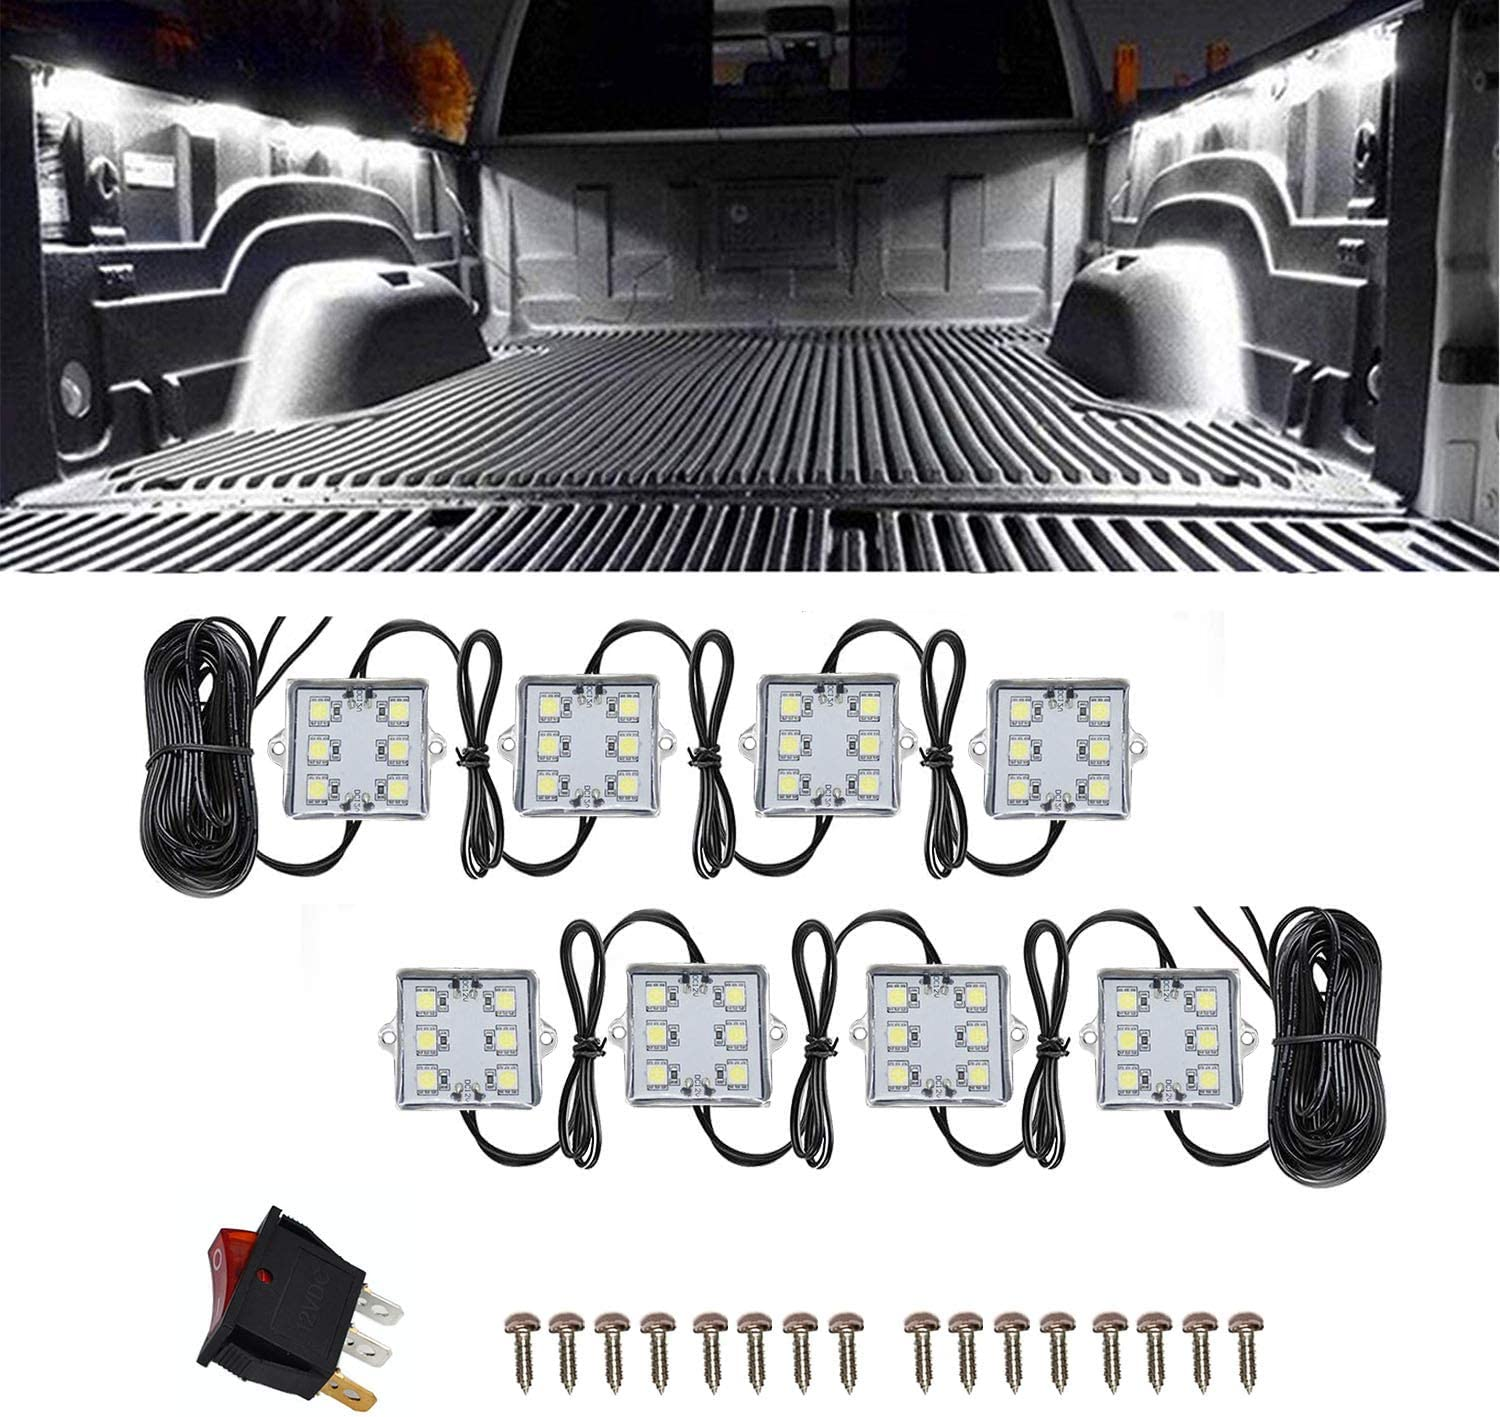 NBWDY 8 PCs 12V Led Truck Bed Light Kit,48 LEDs Cargo Truck Pickup Bed, Off Road Under Car, Foot Wells, Rail Lights Lighting Kit includes Power Switch (White): Automotive